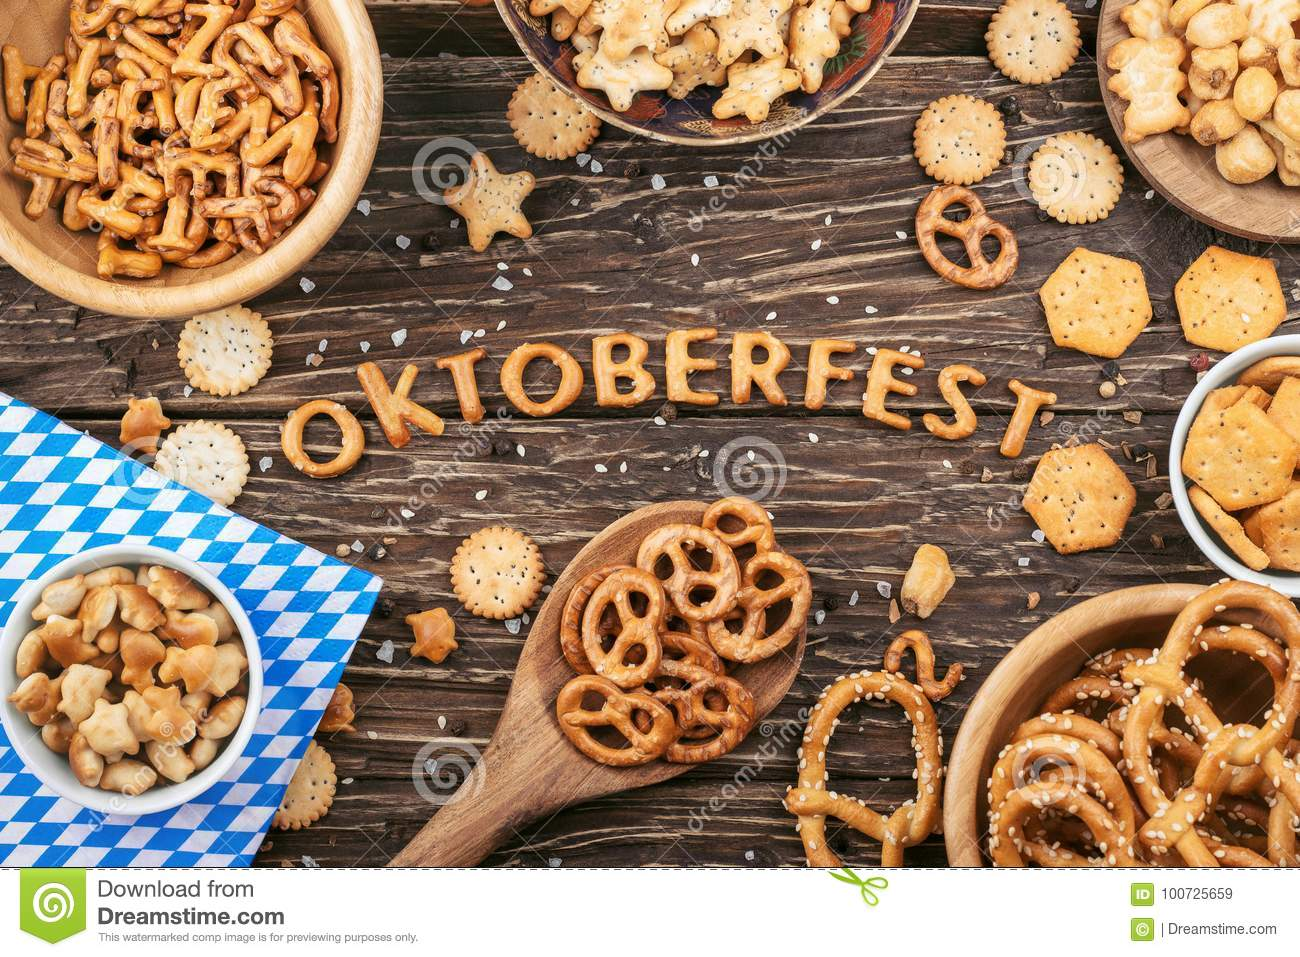 Oktoberfest lettering. Salty crackers, pretzels and others snack